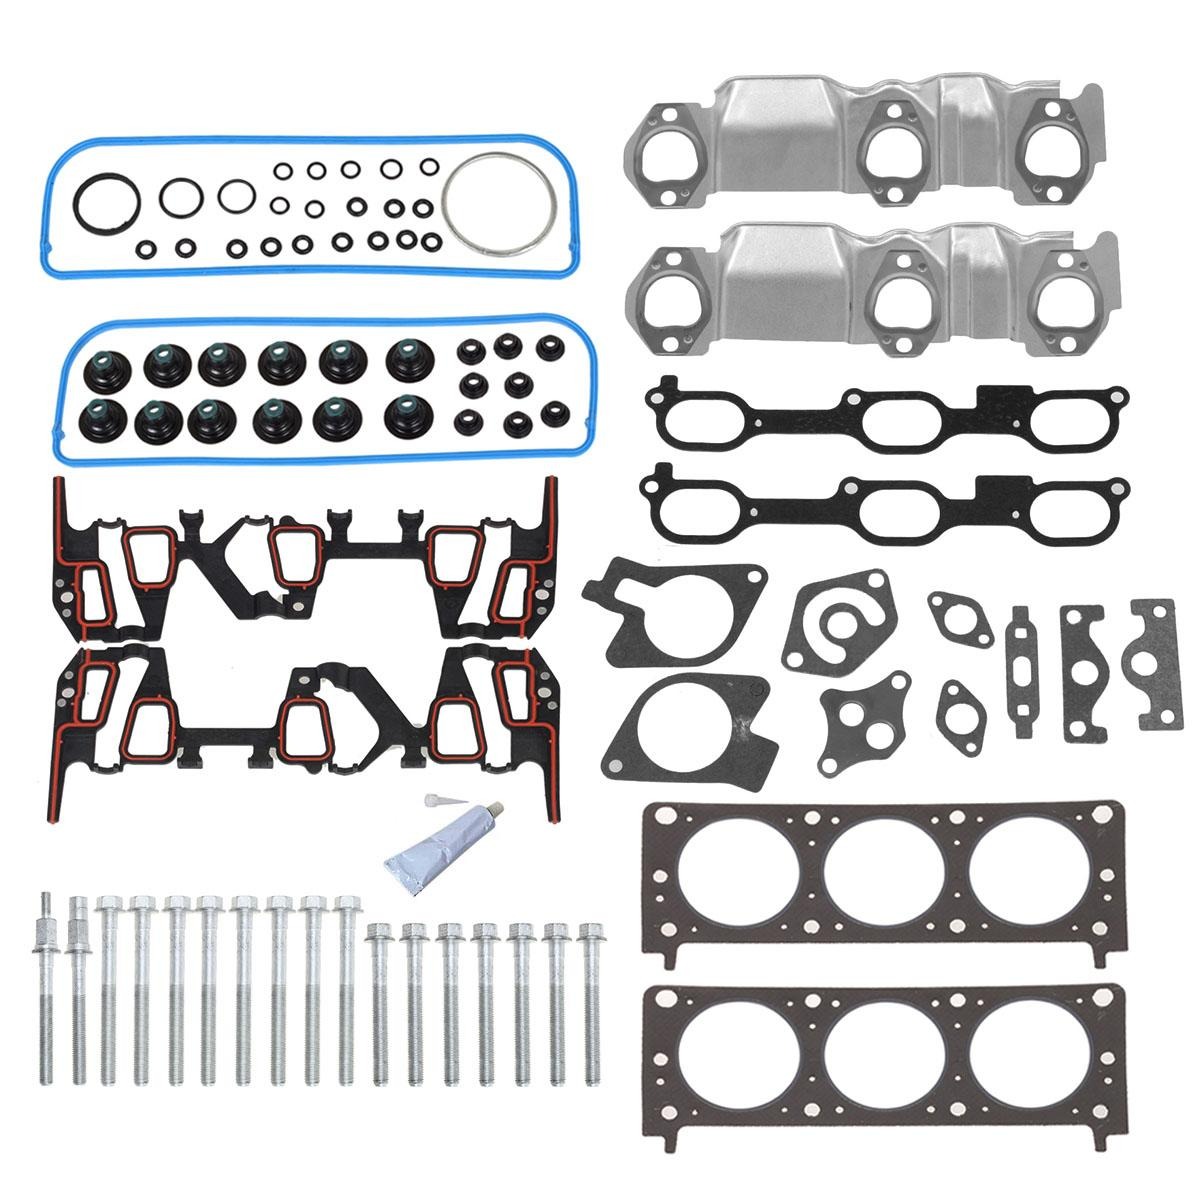 How Do You Replace An Intake Manifold Gasket On A 97 Chevy